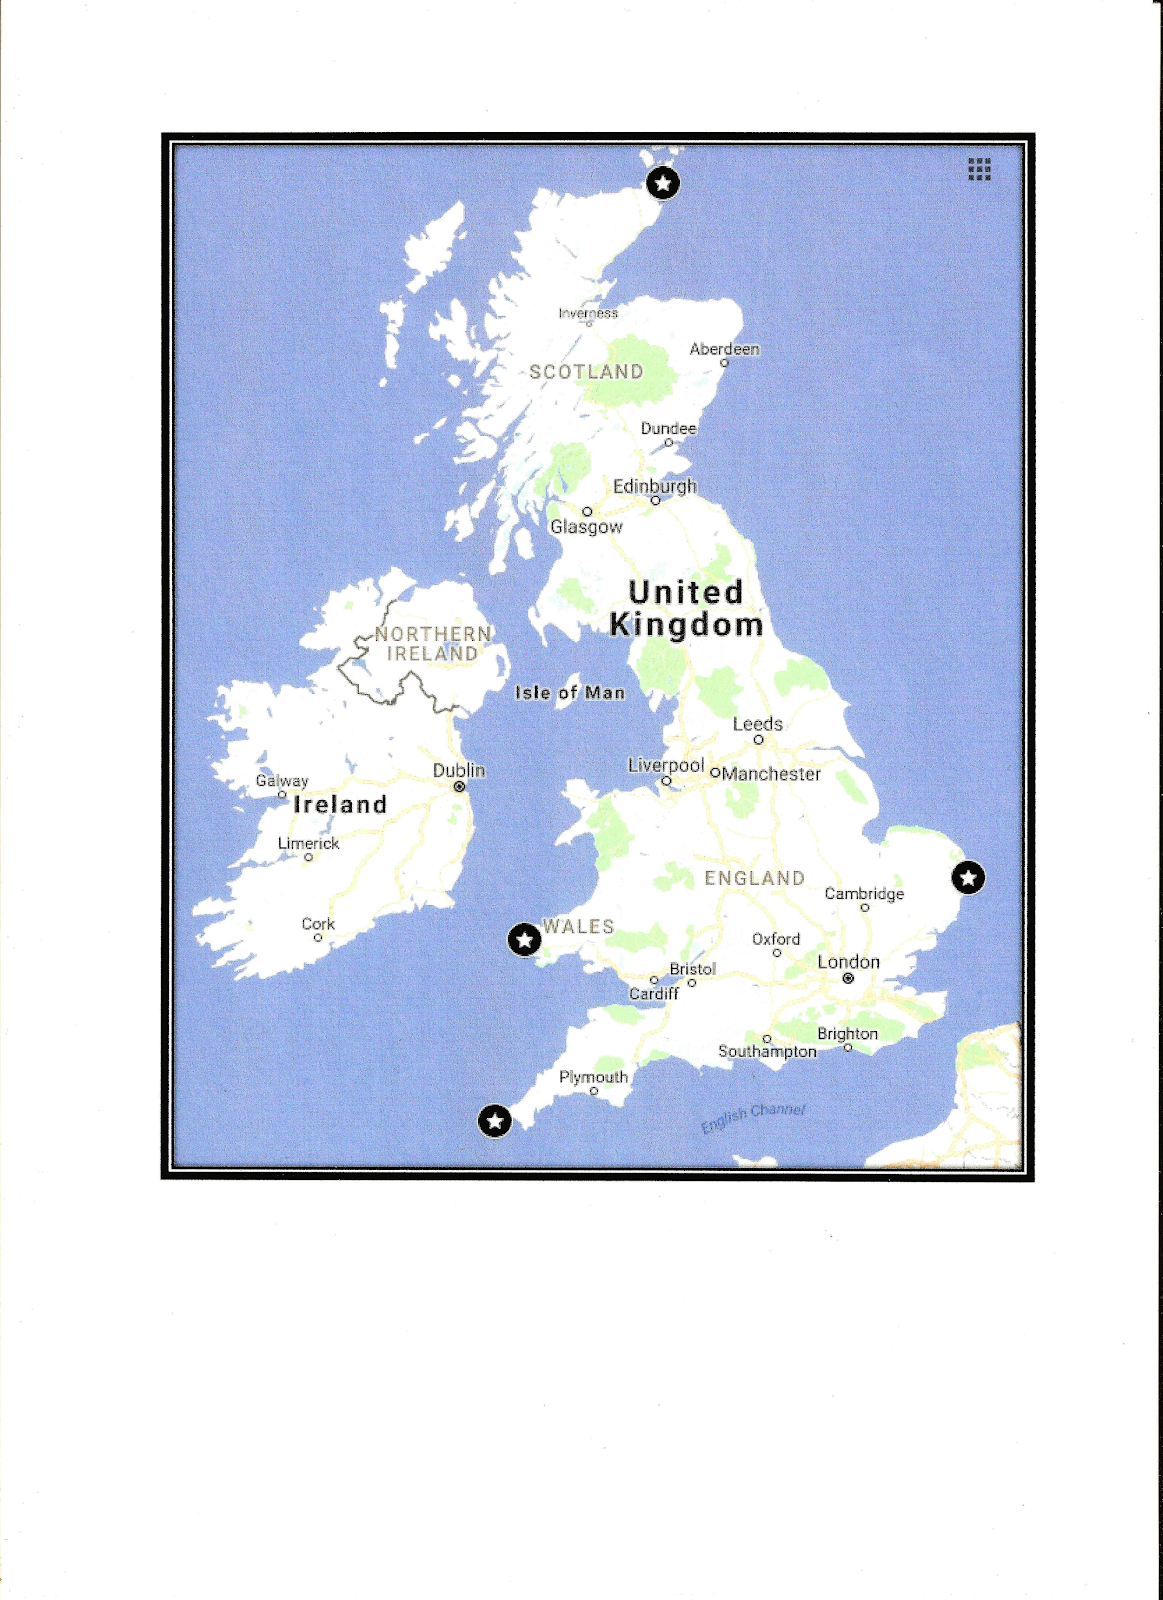 C:\Users\MSF\Desktop\IBA UK 4 Corners Map.jpg